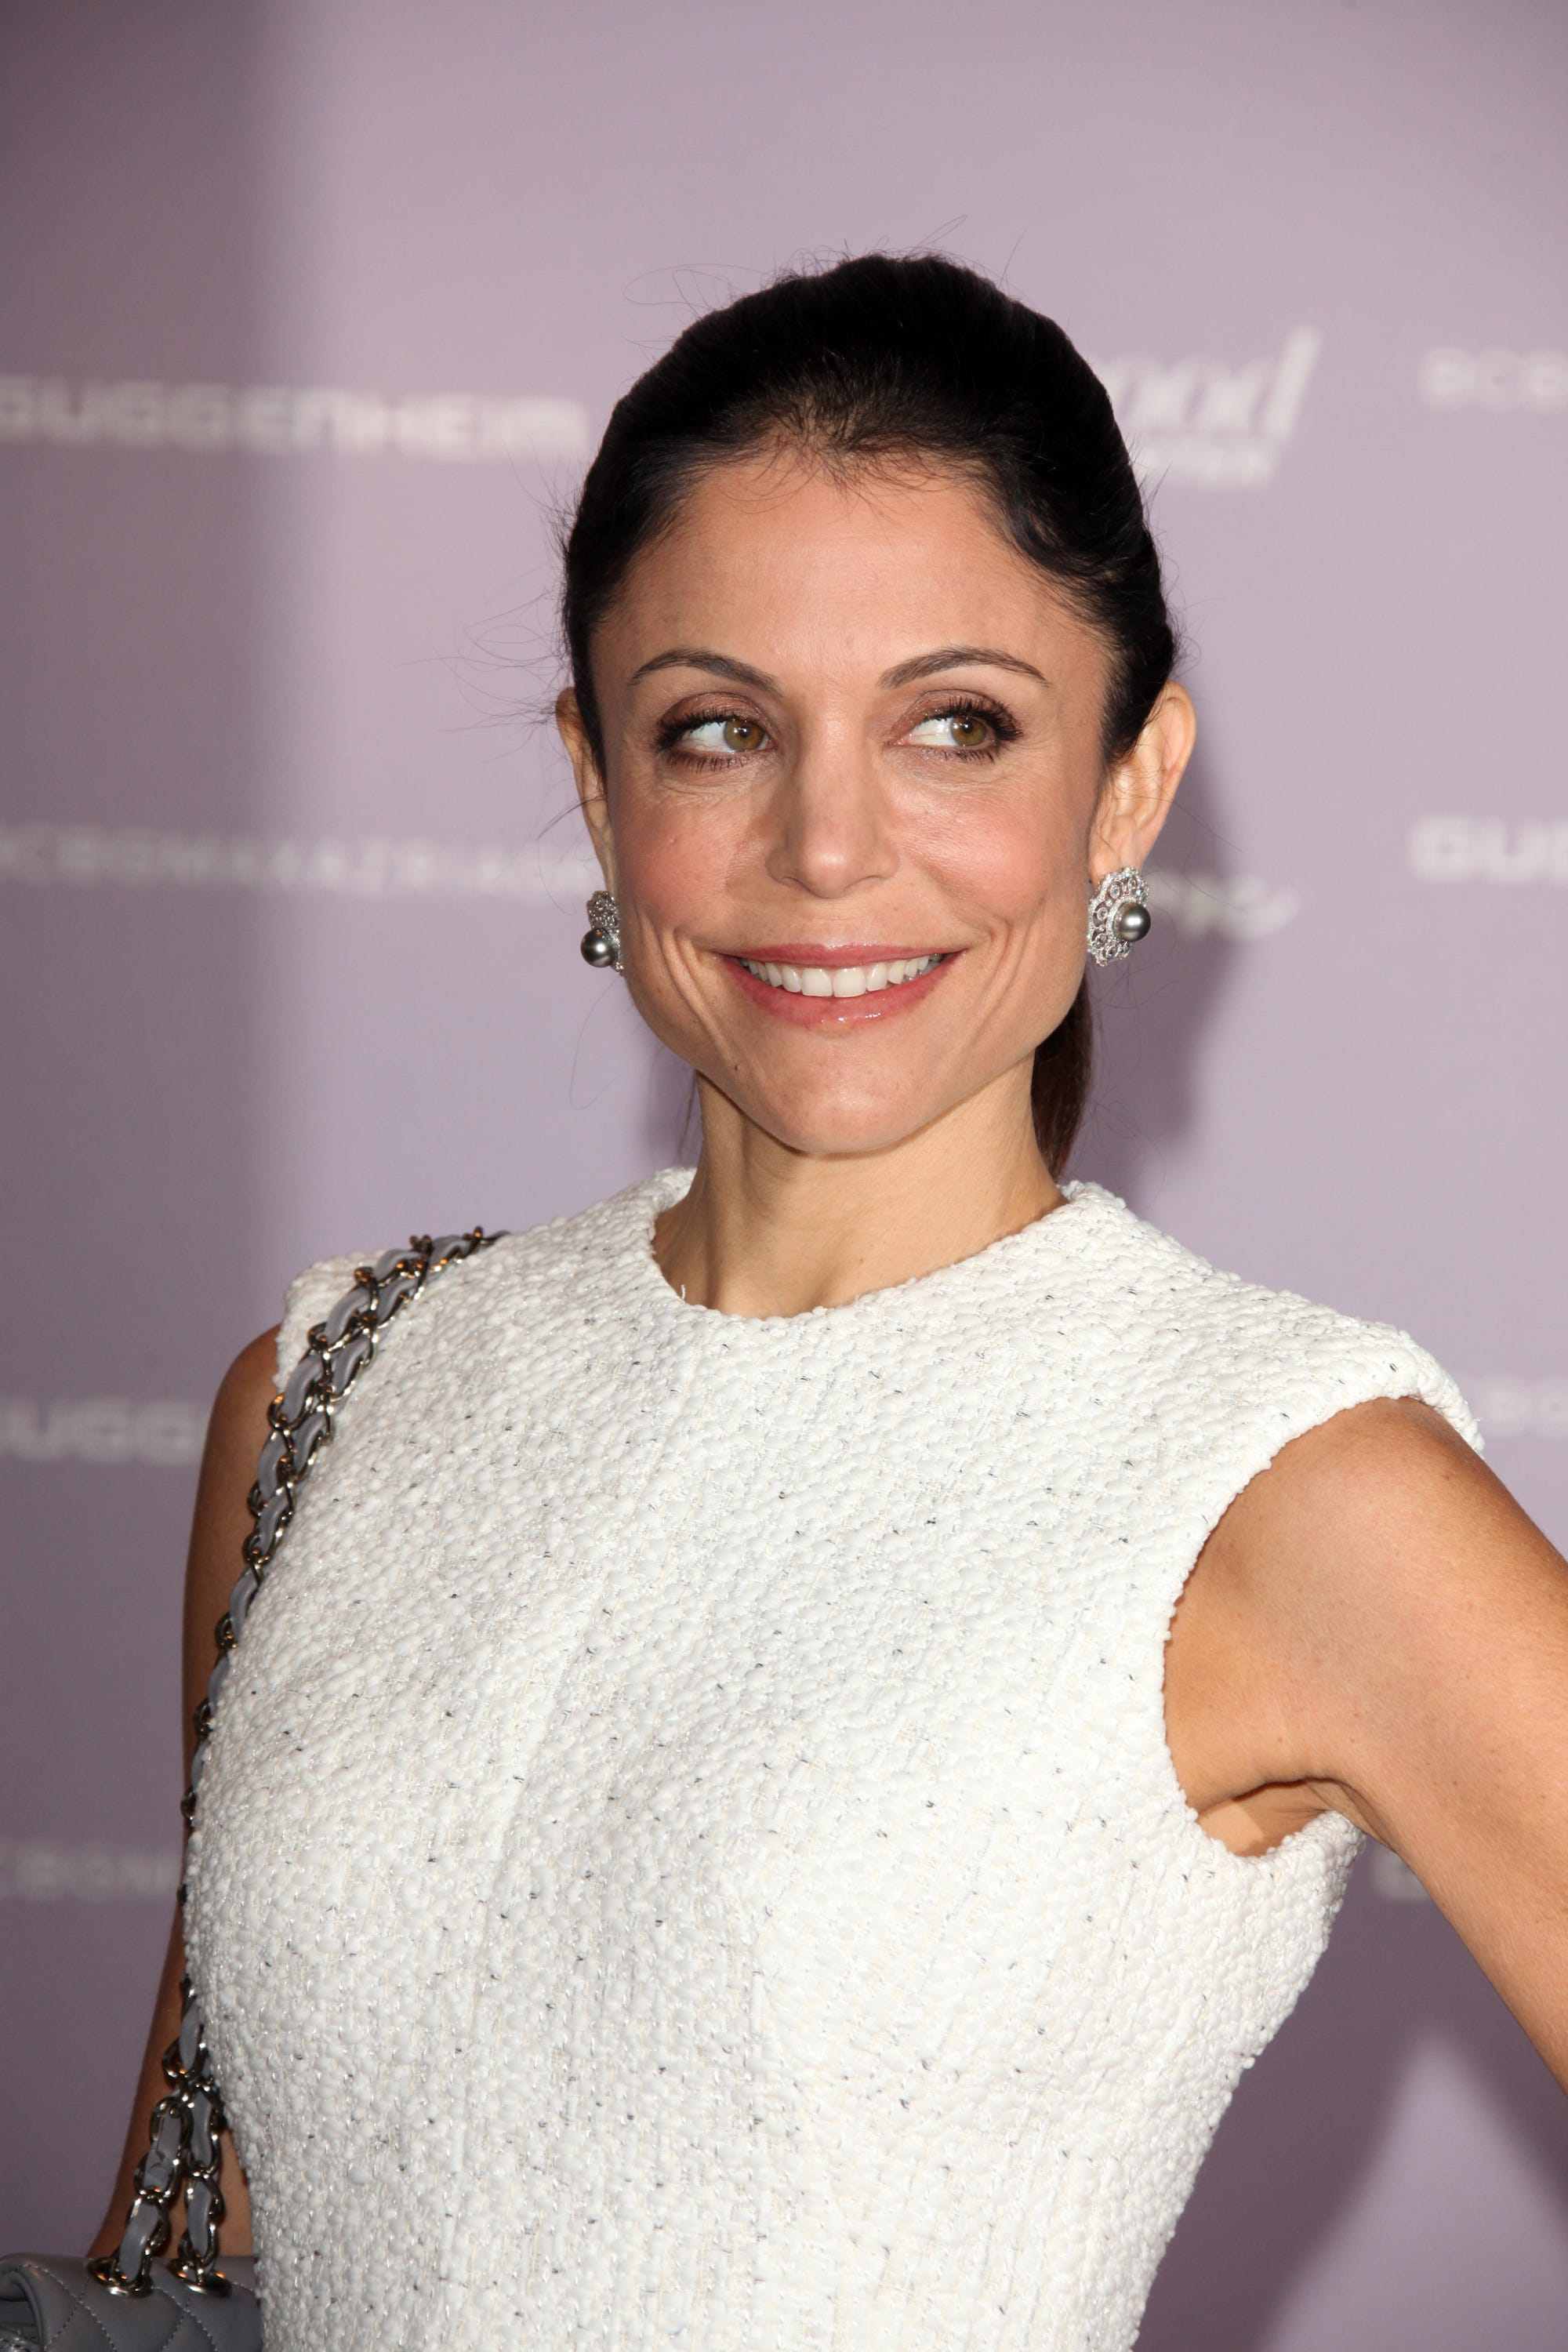 Bethenny Frankel Is Leaving Real Housewives Of New York, But Not Reality TV